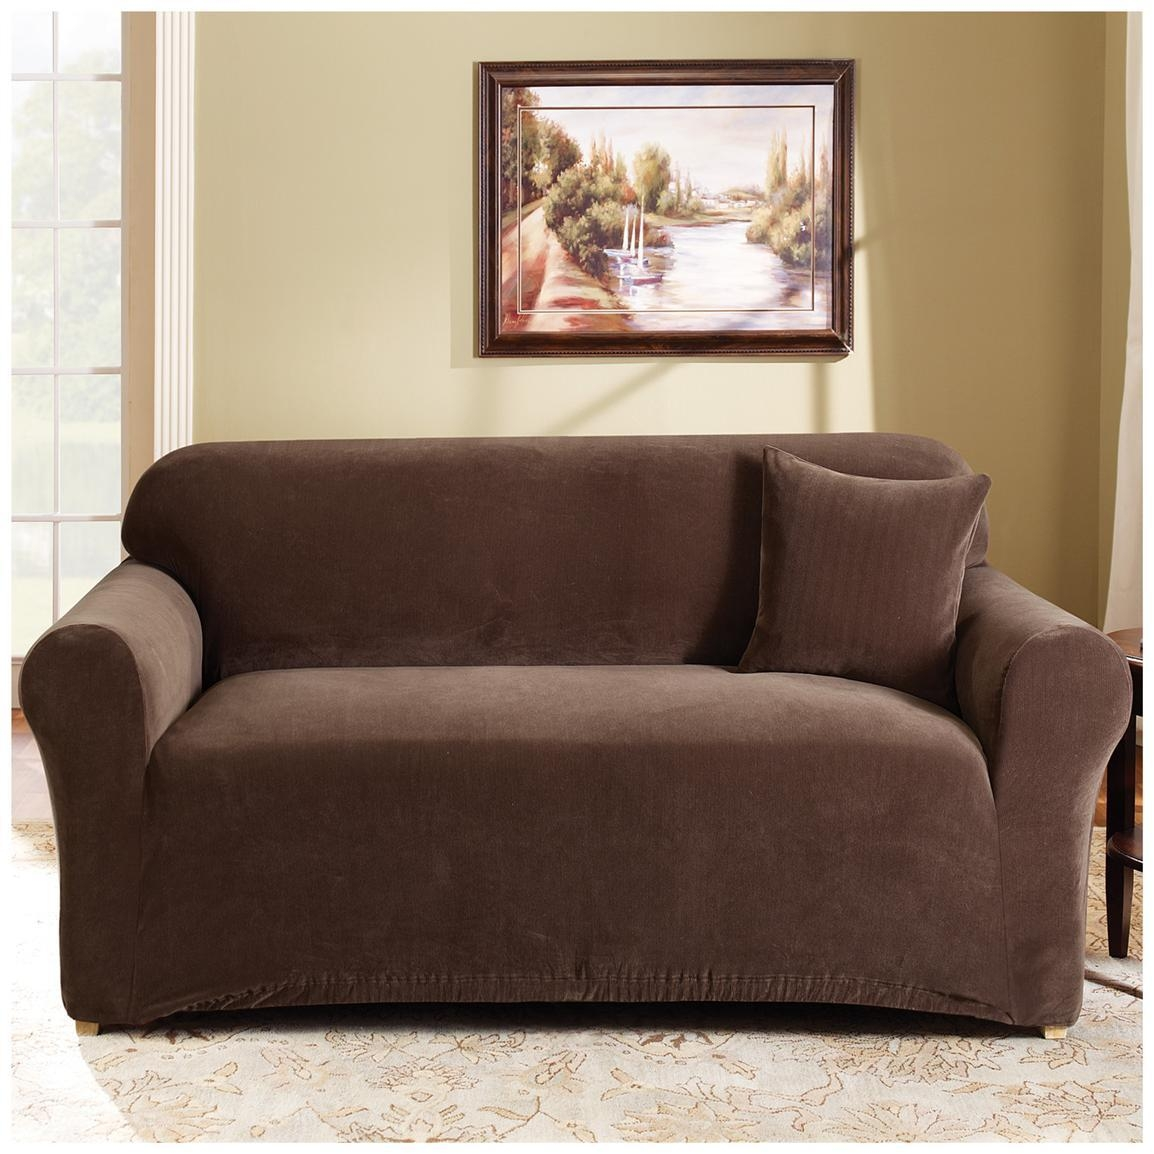 Furniture: Contemporary Sofa Design With Sure Fit Couch Covers Inside Sofa And Loveseat Covers (View 2 of 20)